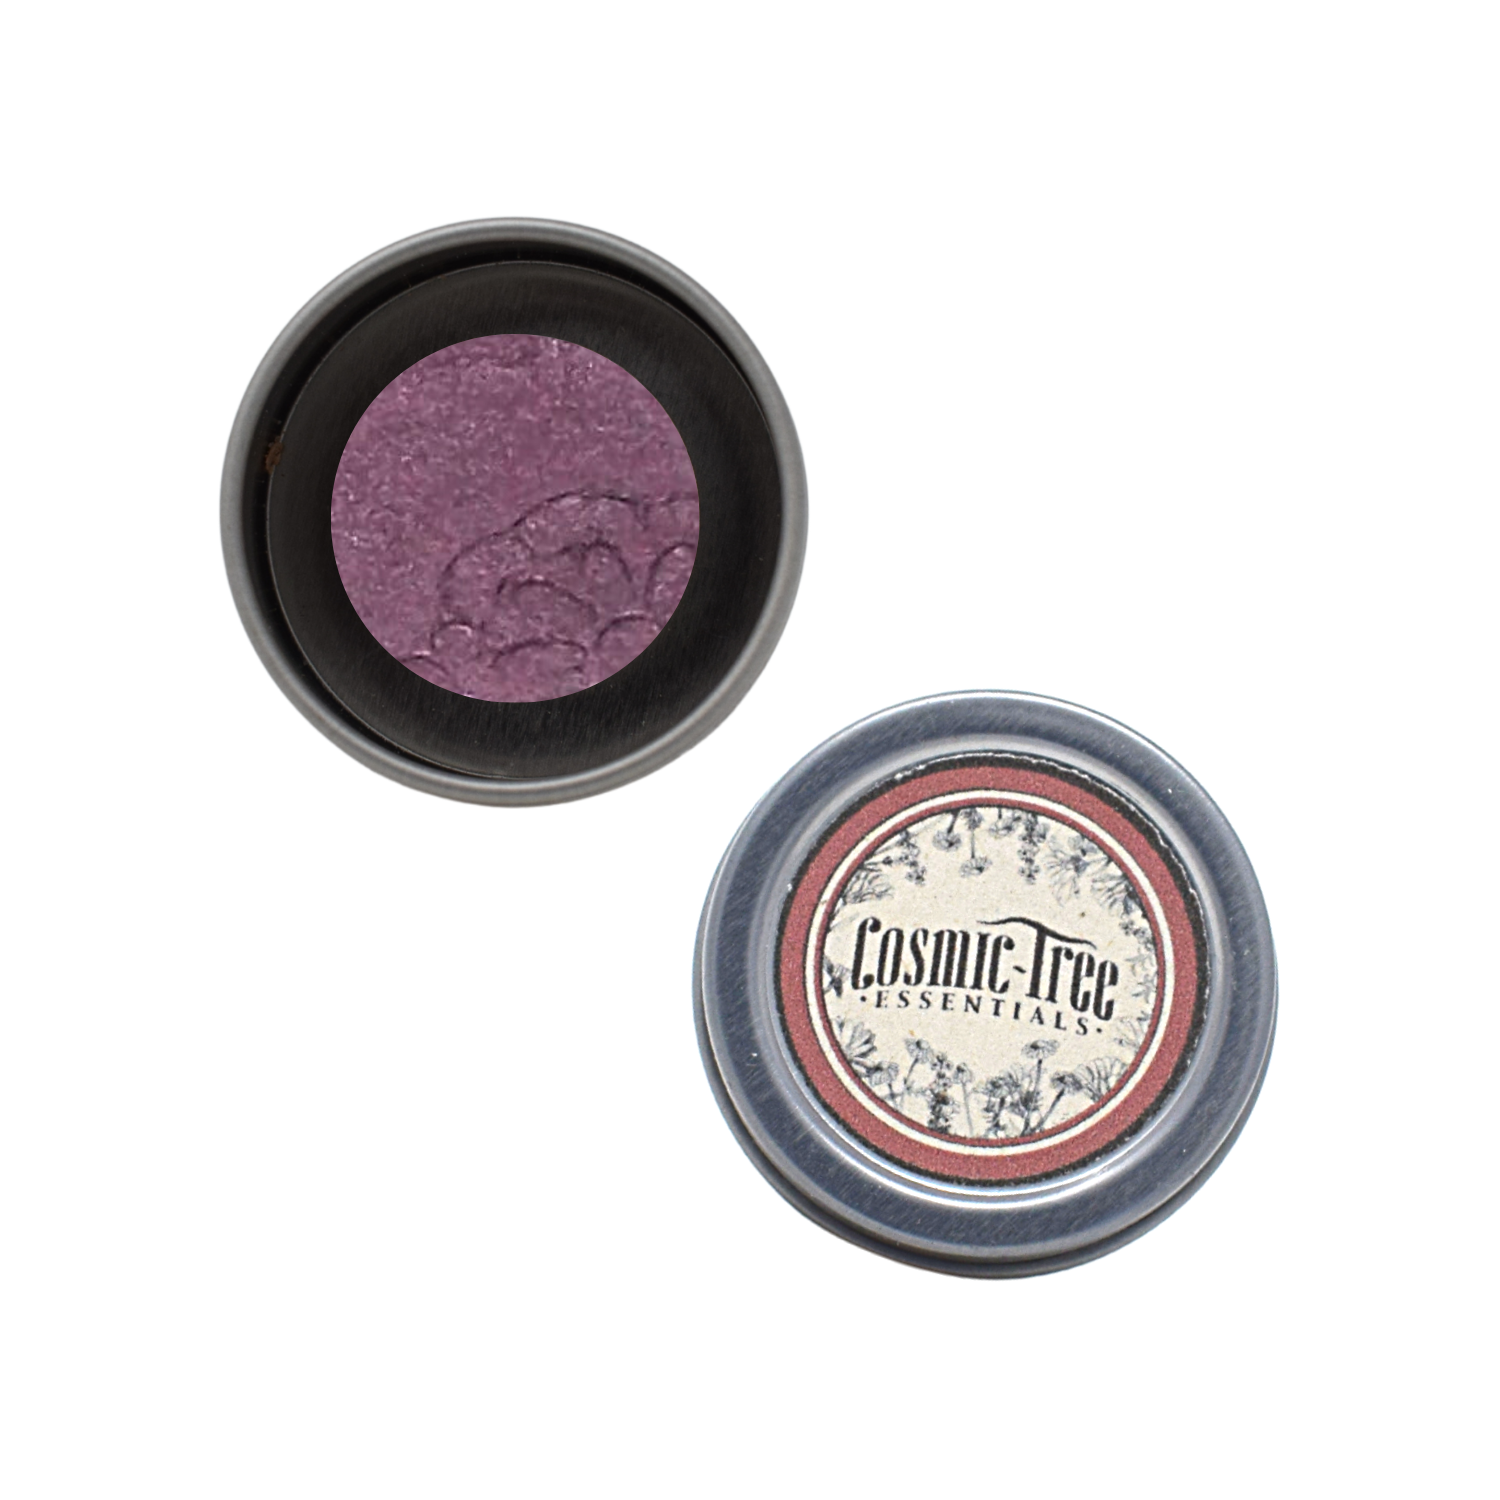 Crucible Pressed Eye Shadow in Vintage Iris